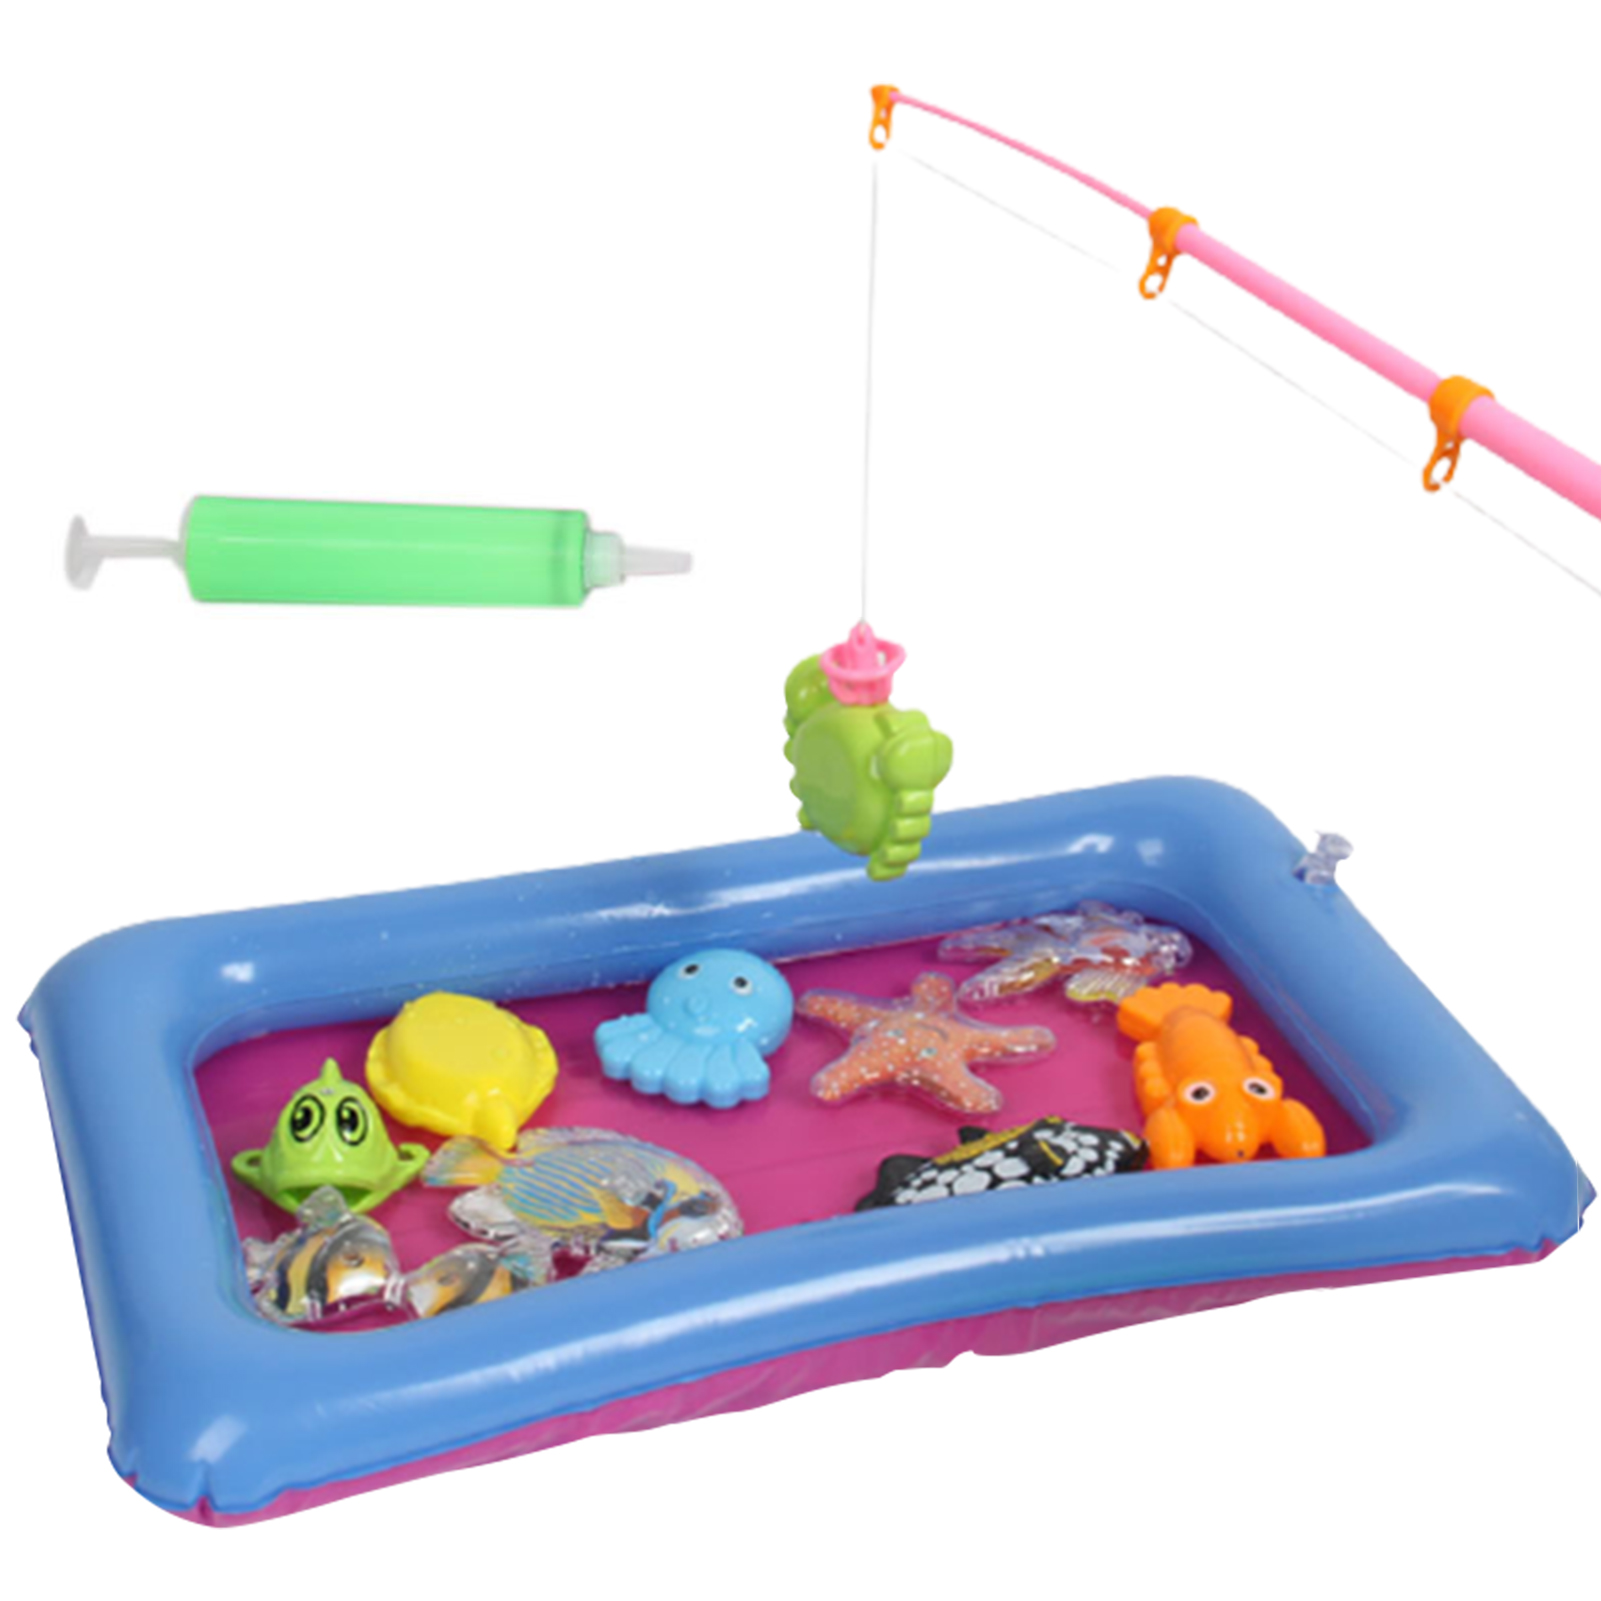 Children Fishing Toys Set With Blow Up Pool Safe Magnetic Toys Suit Magnetic Play Water Baby Toys Fishing Toy Pool Gift For Kids